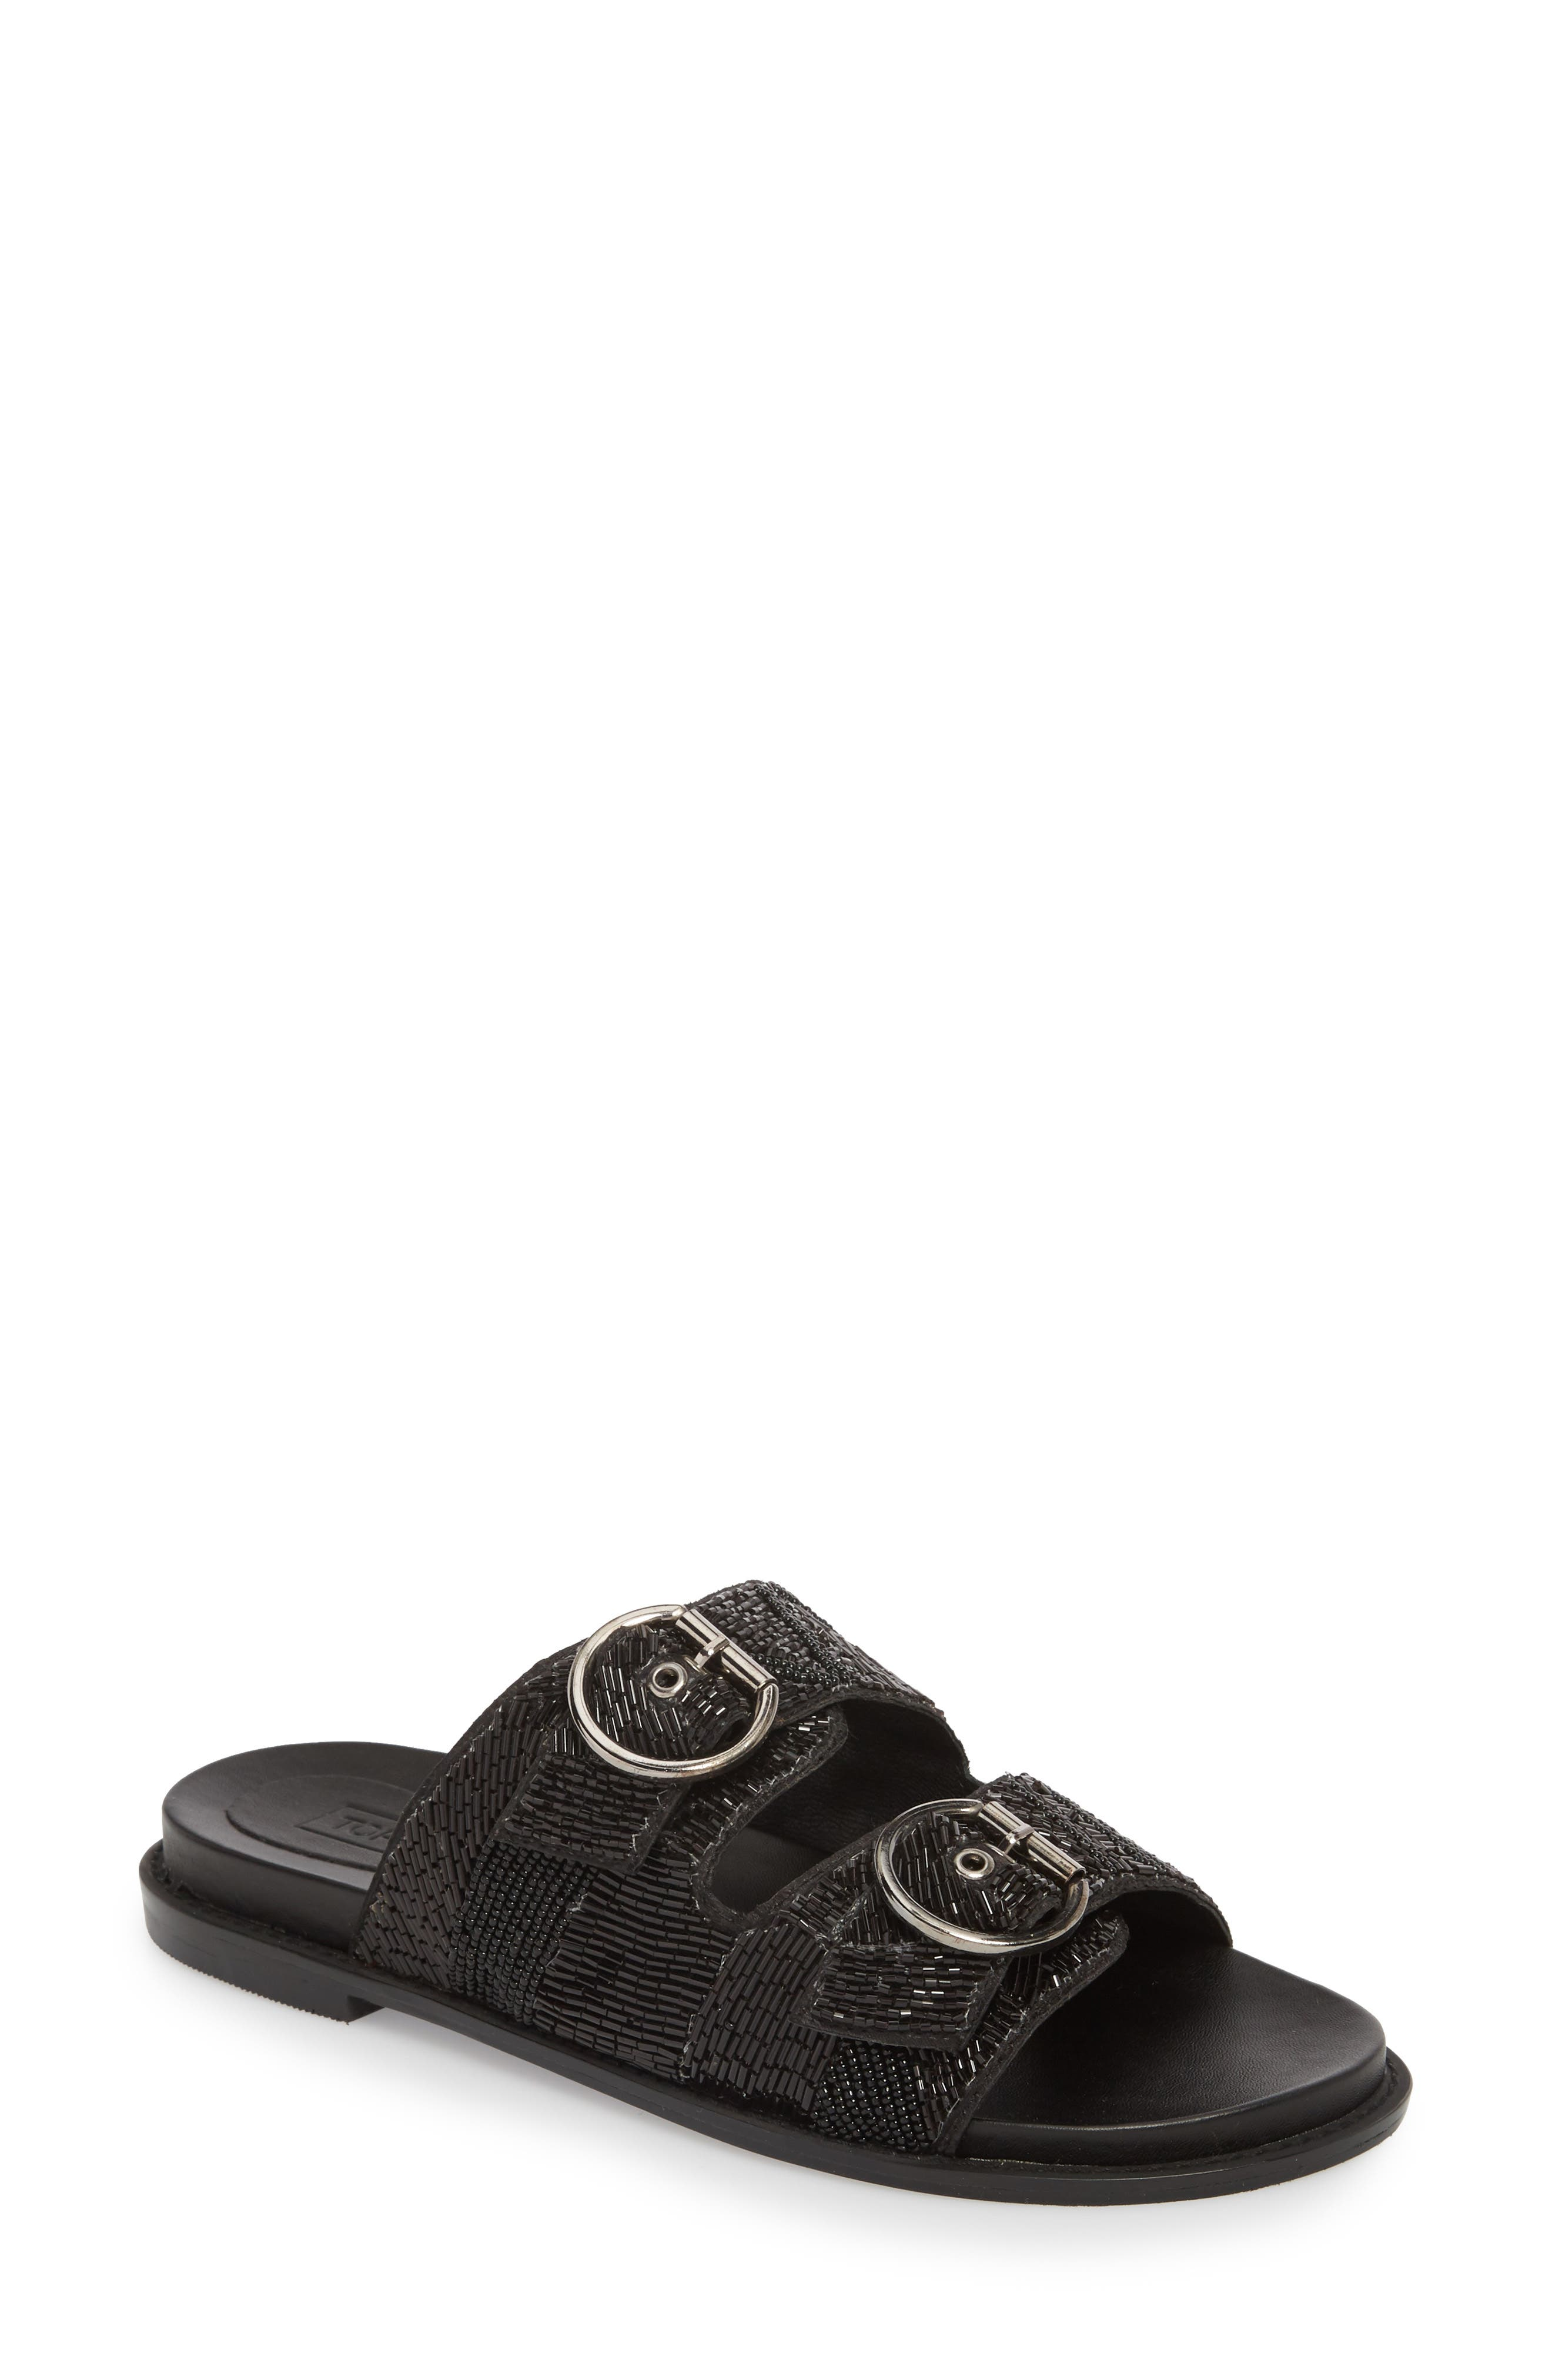 Frankie Embellished Slide Sandal,                         Main,                         color, 001